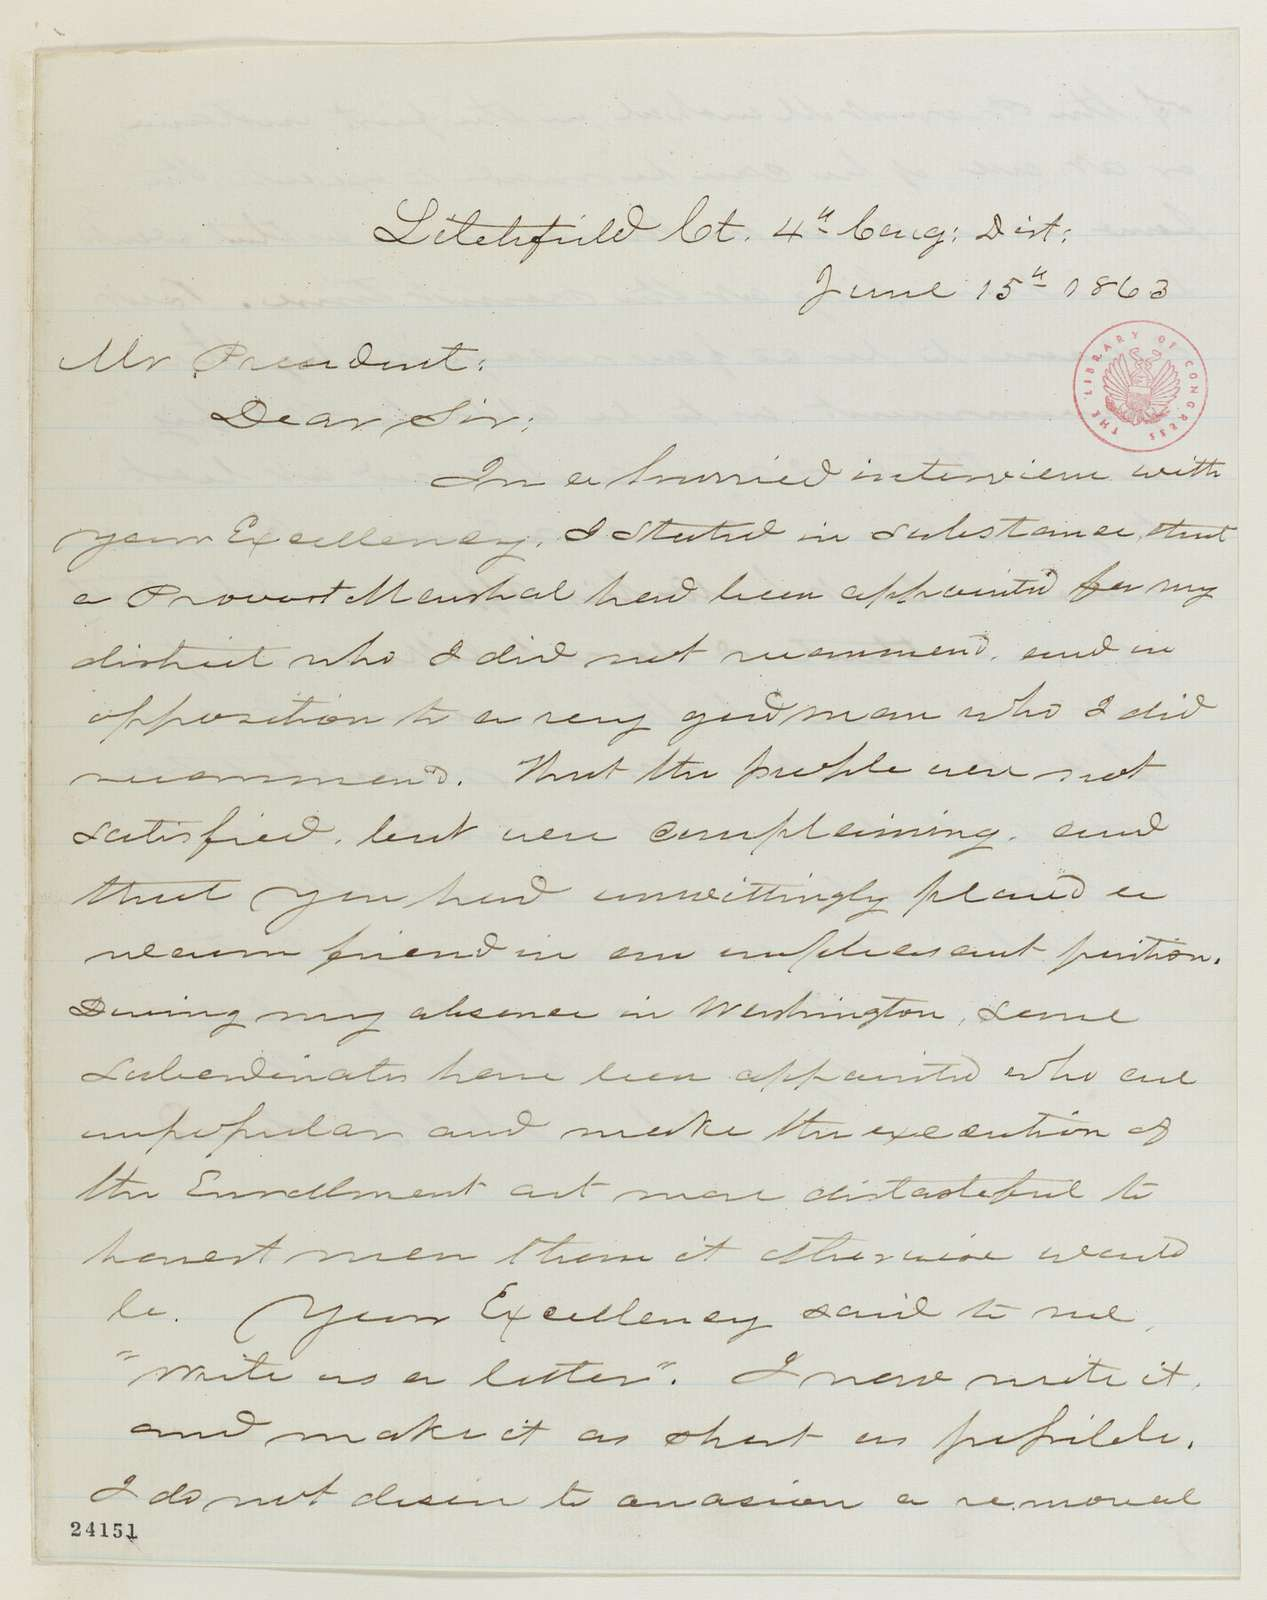 Abraham Lincoln papers: Series 1. General Correspondence. 1833-1916: John Hay to Julian R. Campbell, Monday, June 15, 1863 (Acknowledgment of his June 10 letter to Lincoln)